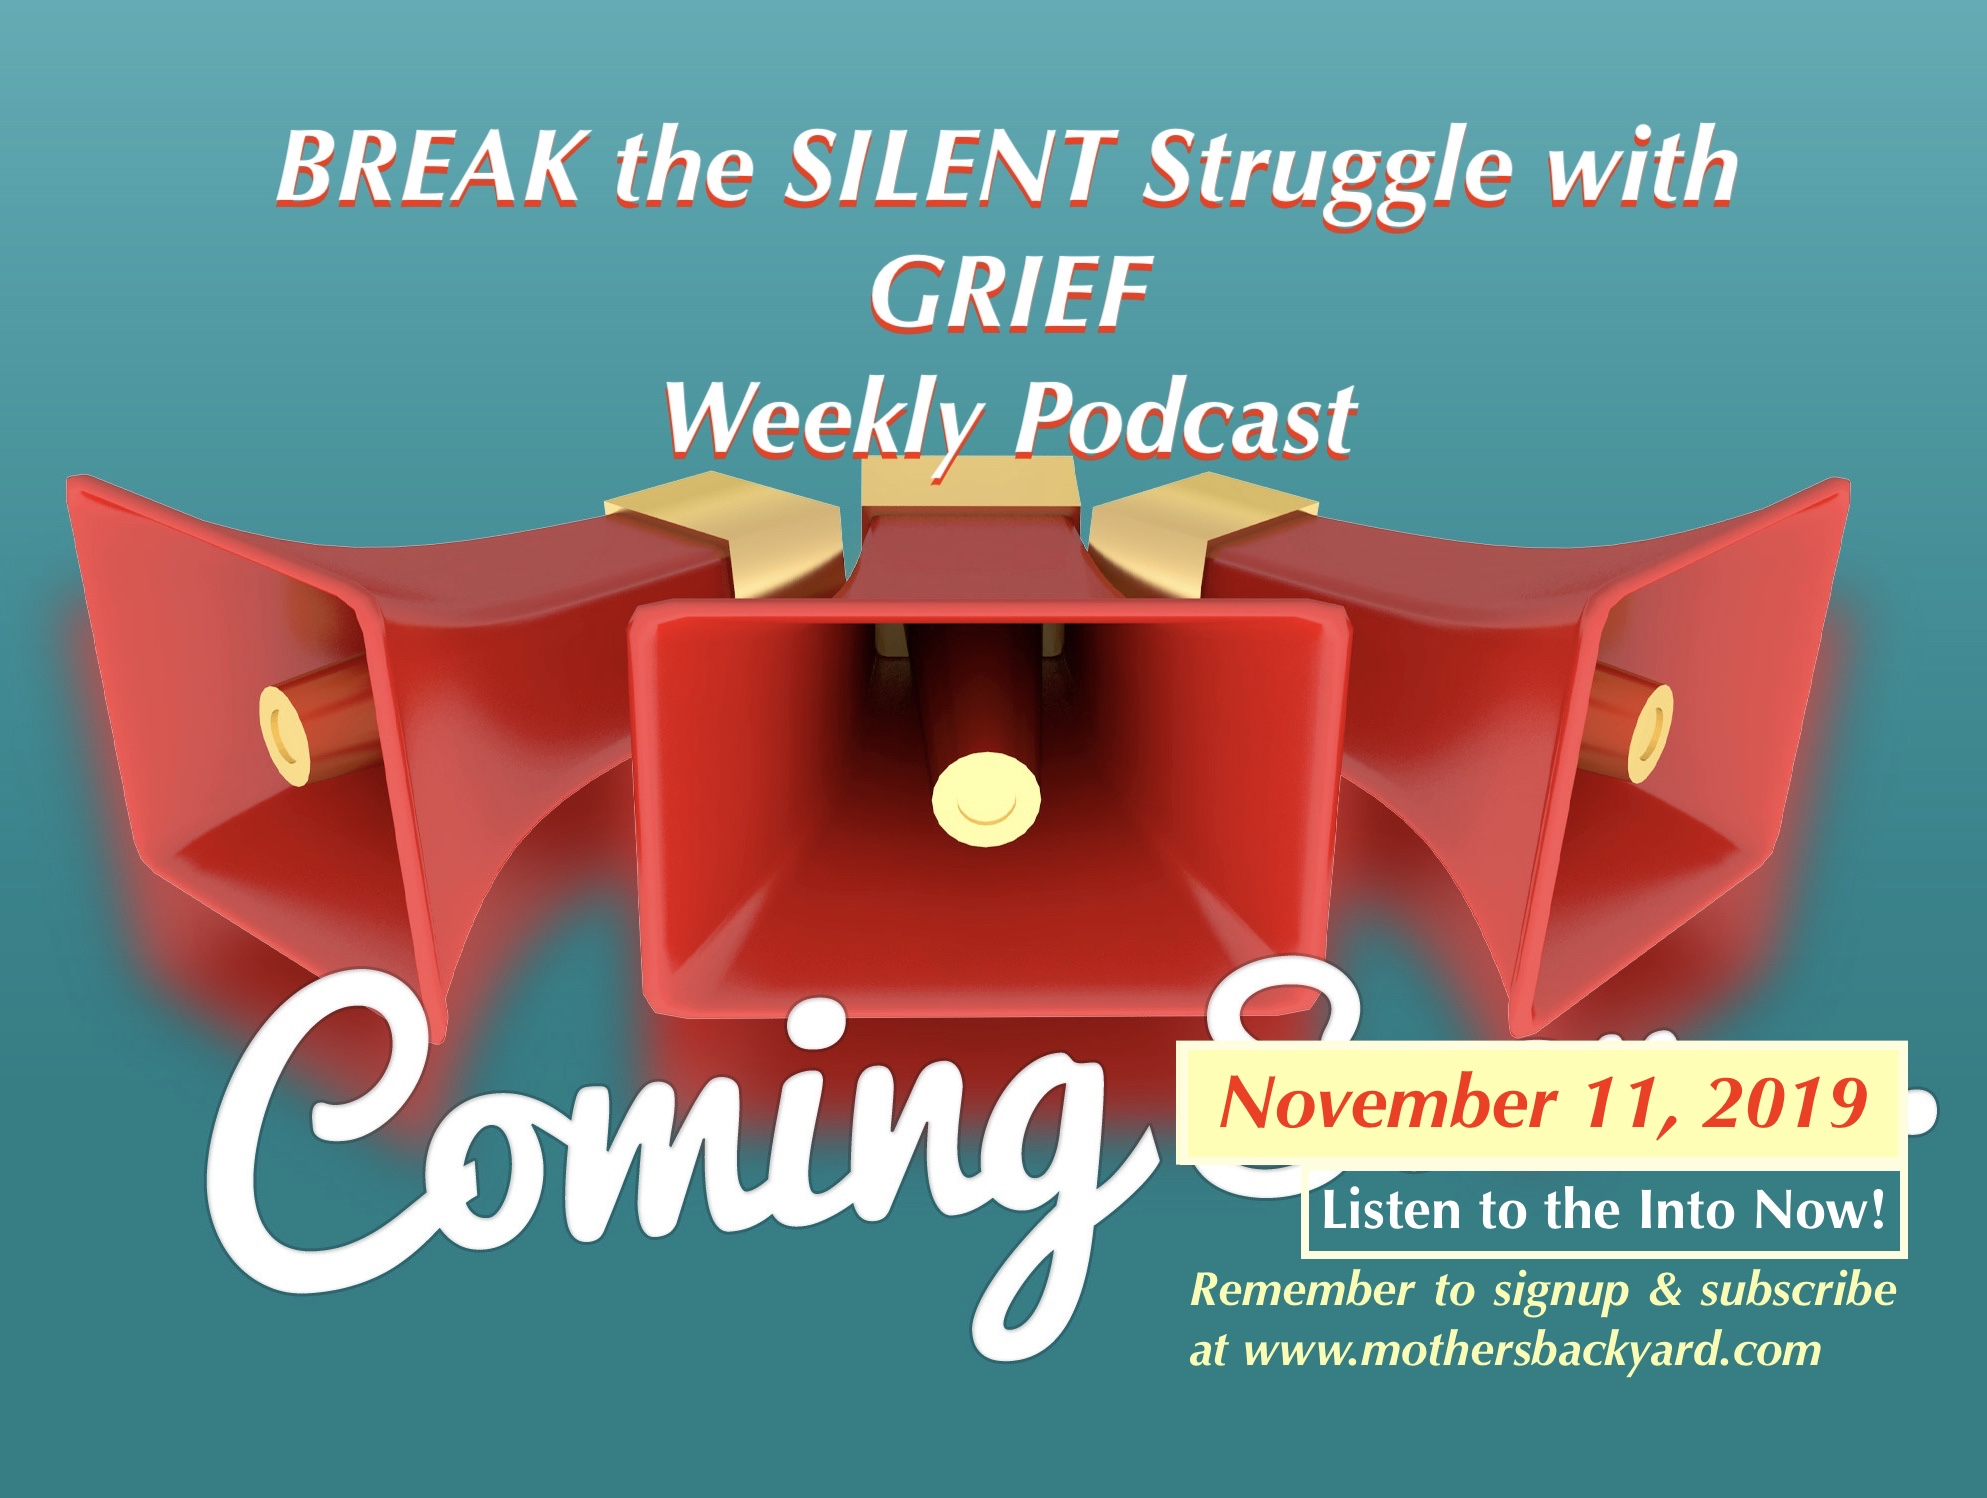 Intro to #empathyforgrief podcast